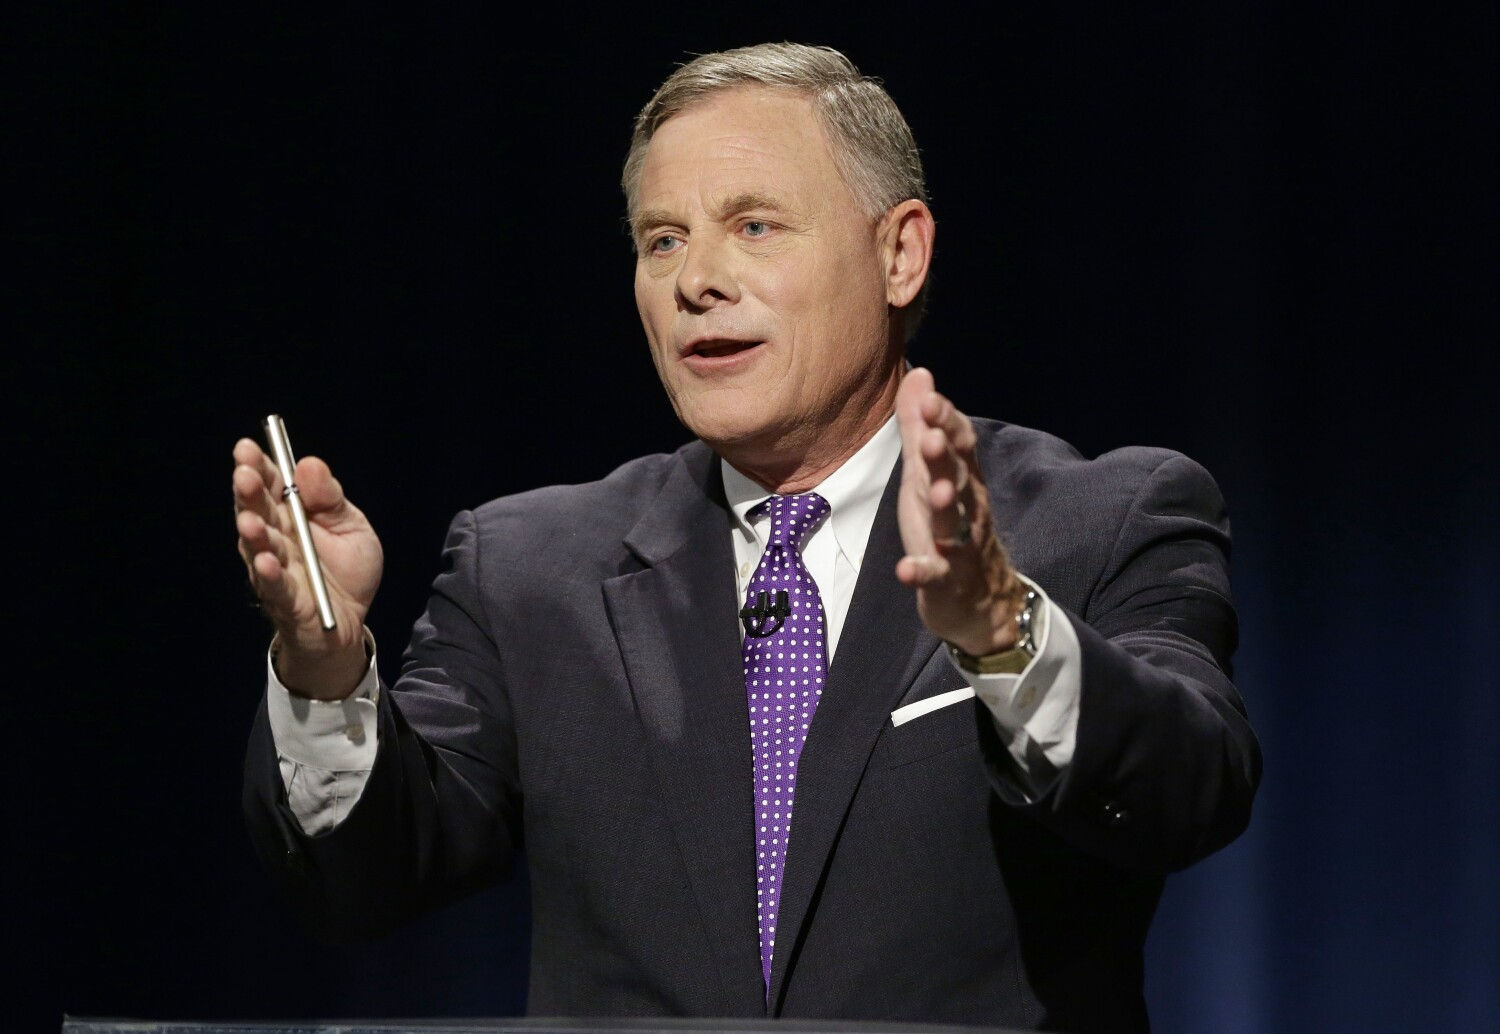 Los Angeles Times appeals judge's ruling denying access to Sen. Burr search warrant